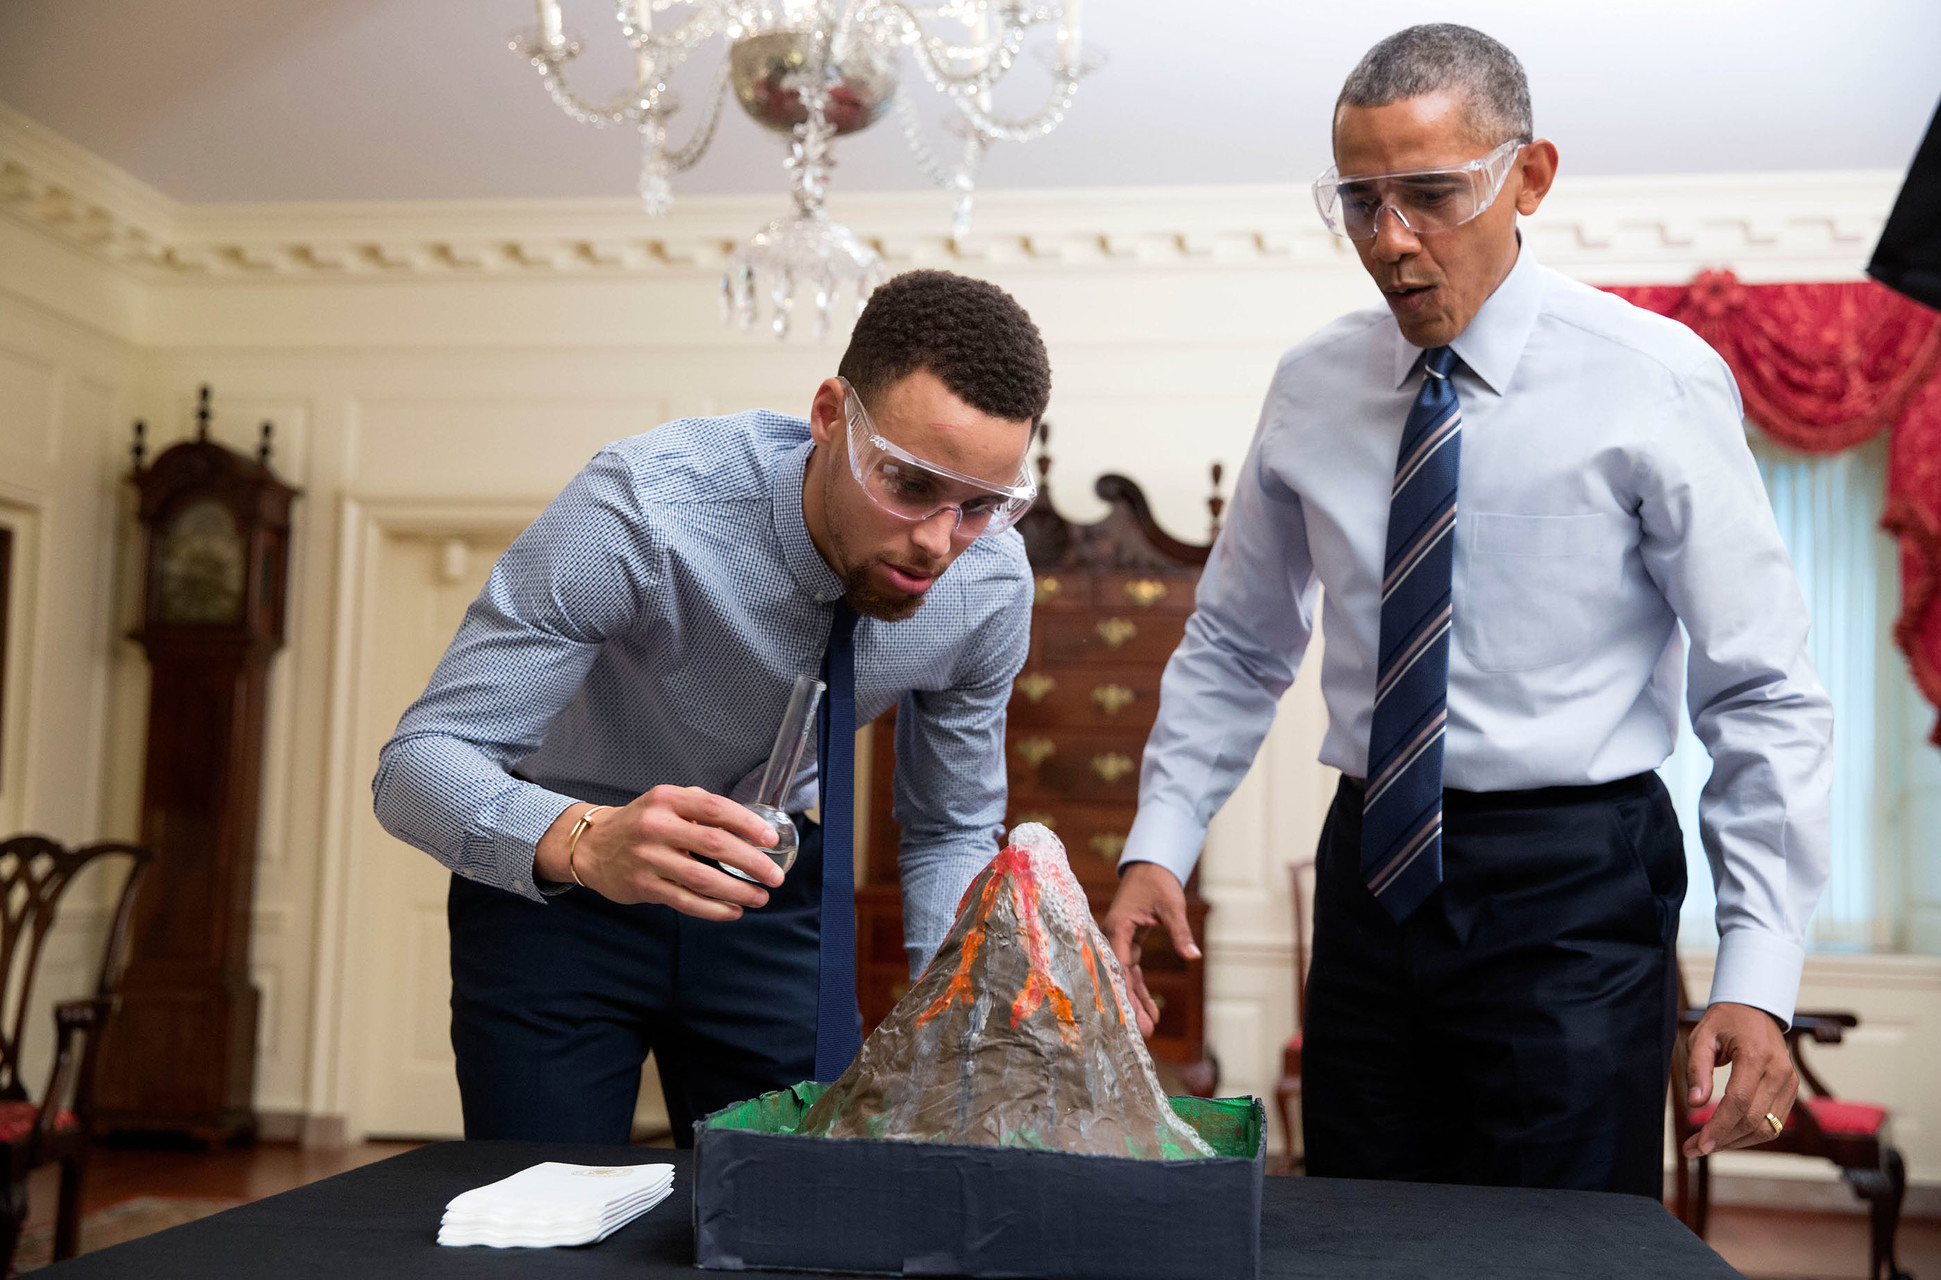 Obama Basketball Star Stephen Curry Team Up On Mentorship